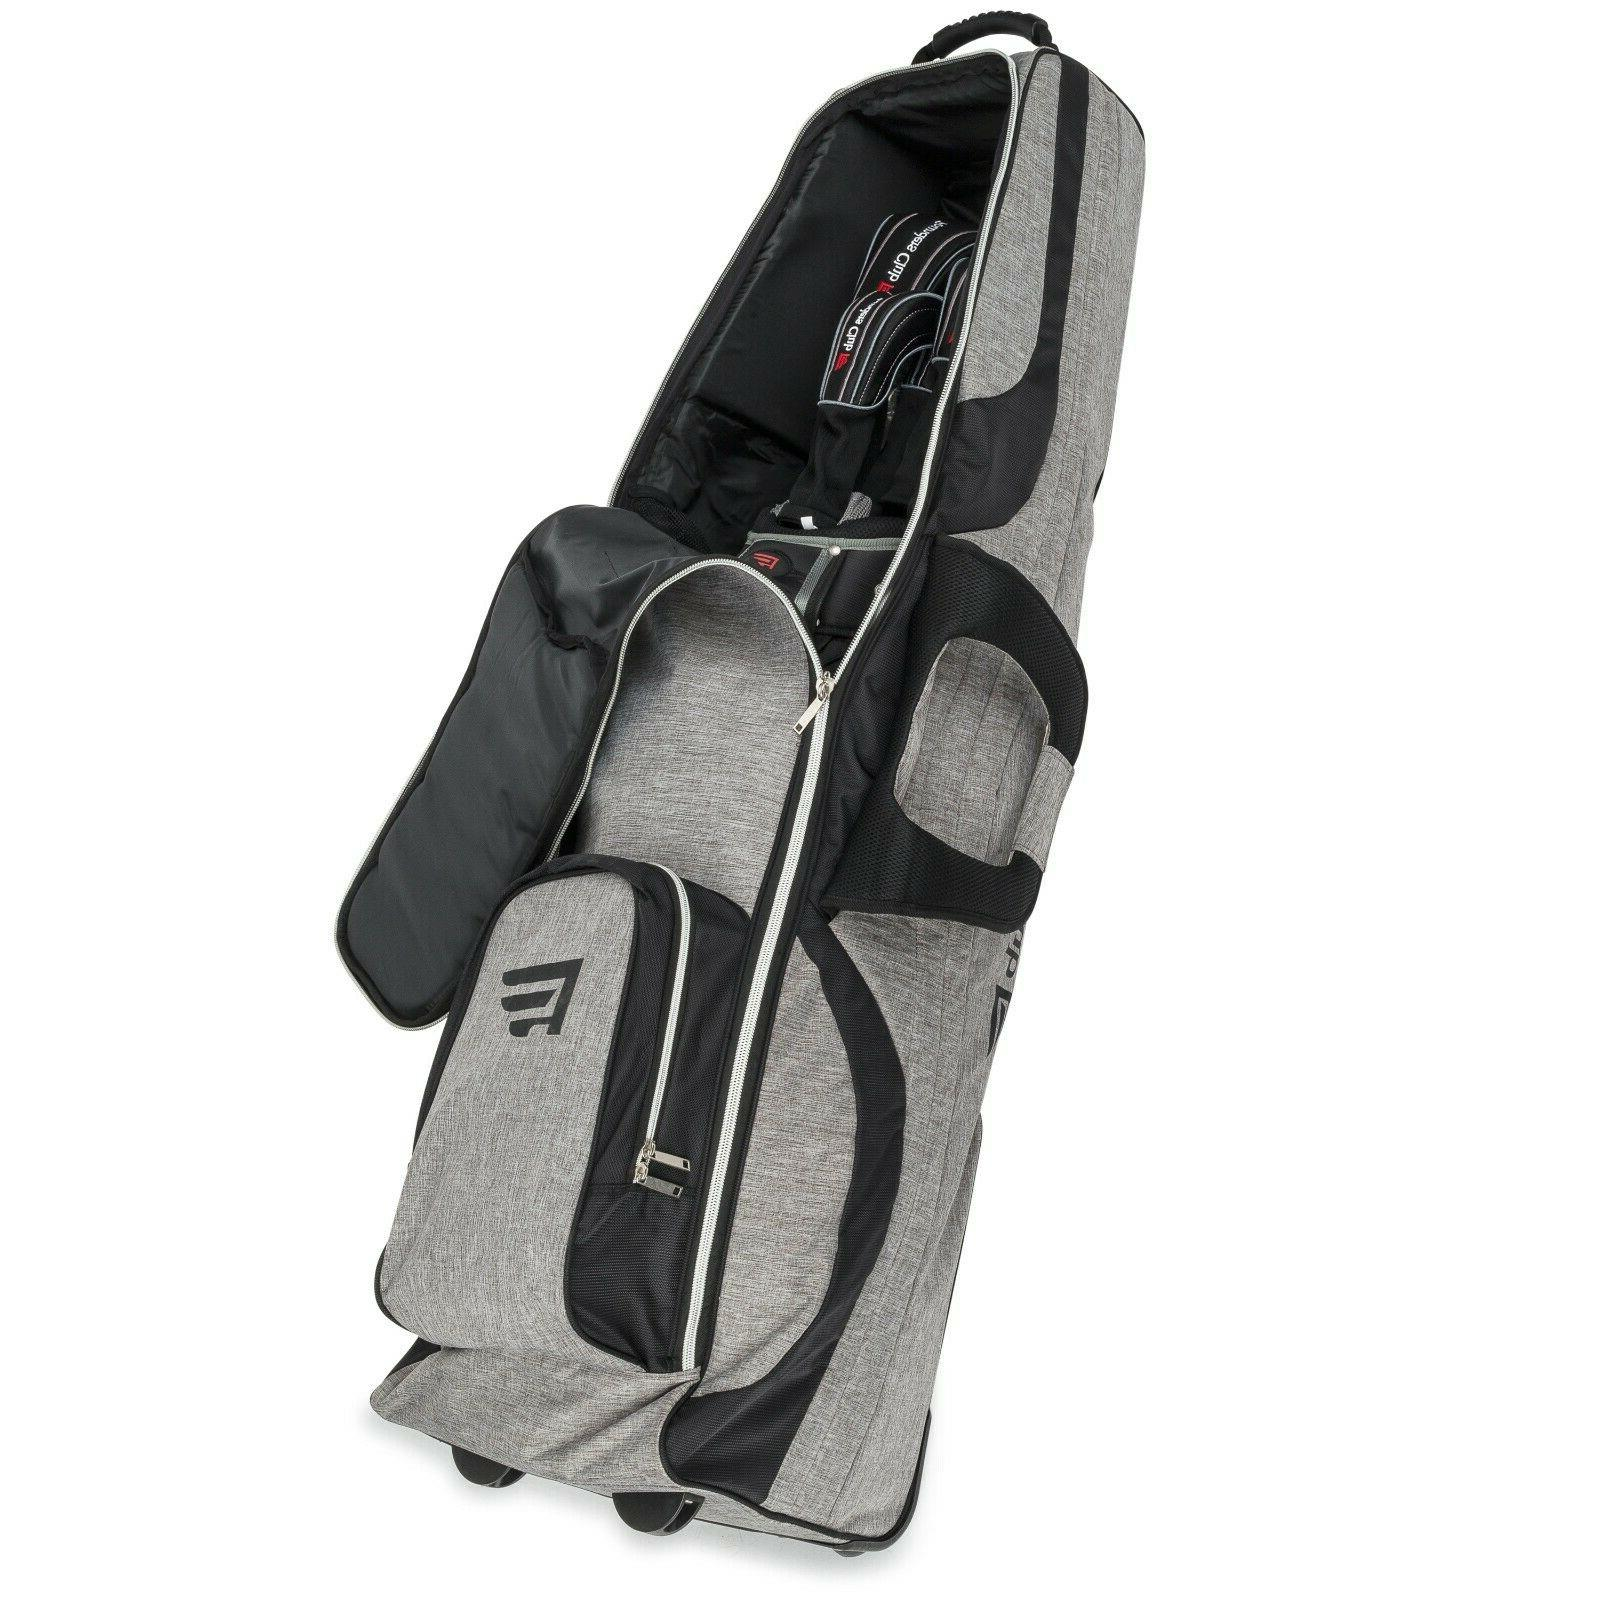 Founders Club Travel Bag Luggage Padded Clubs